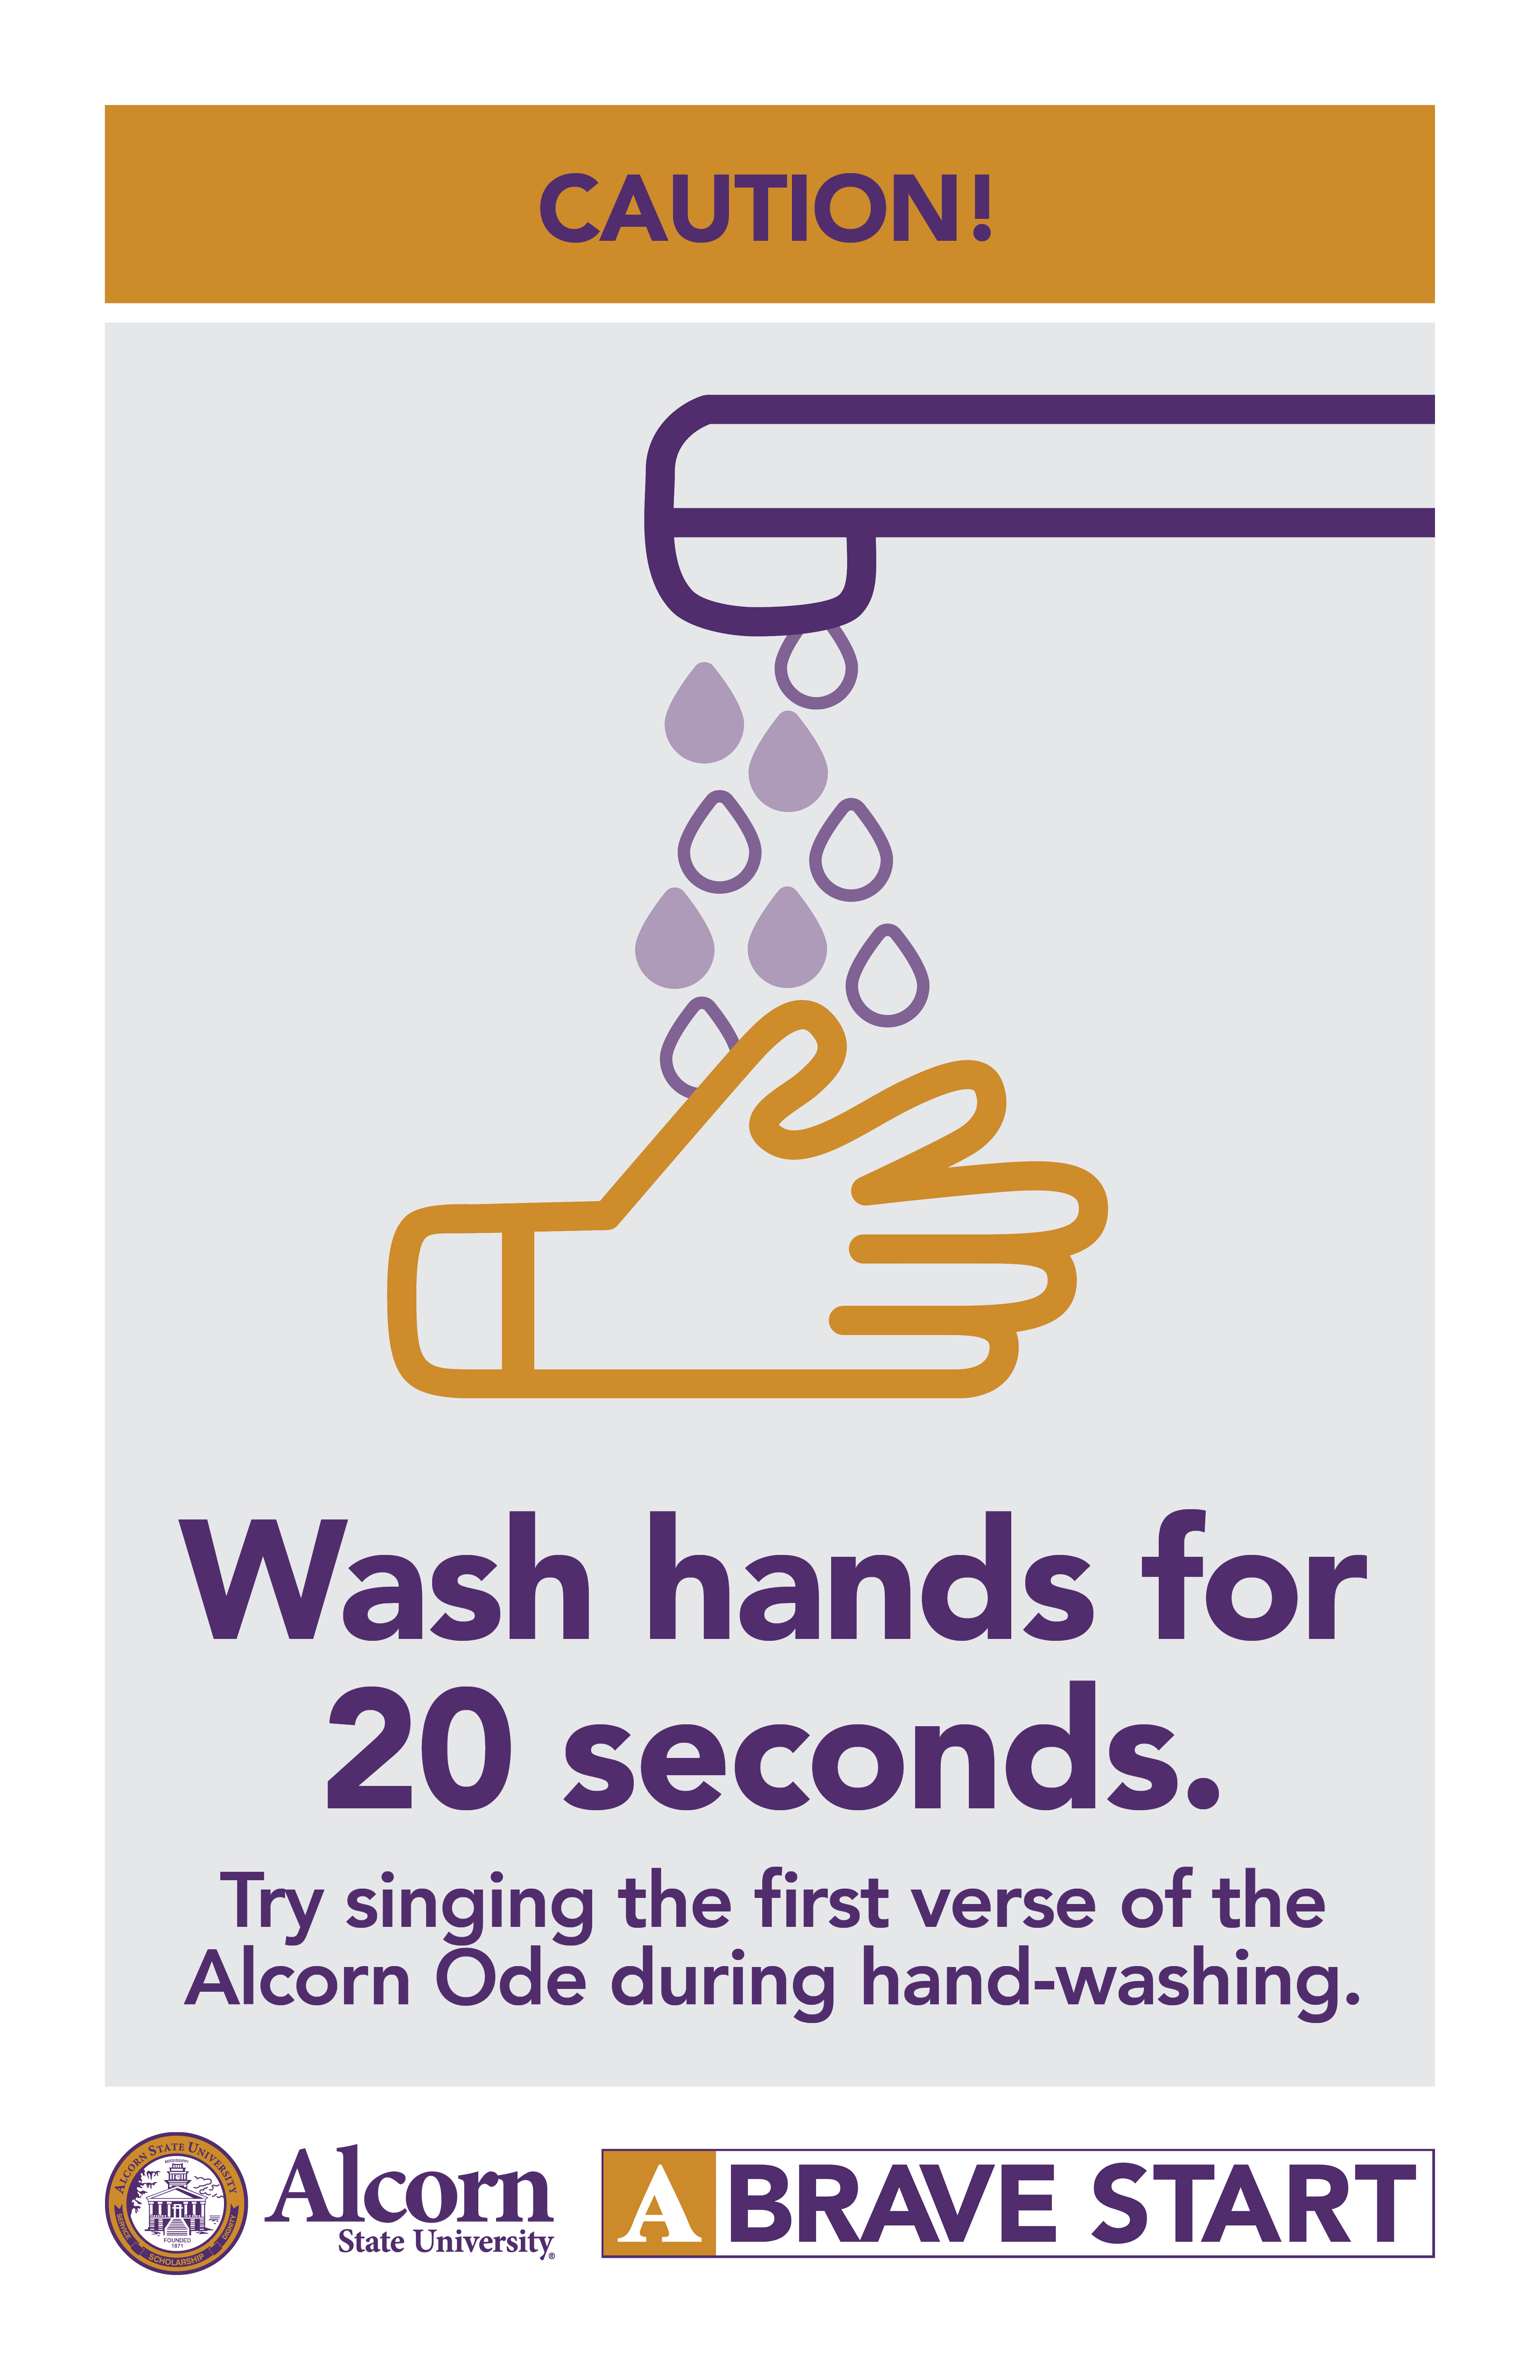 CAUTION! (Picture of hand washing)  Wash hands for 20 seconds. Try singing the fi rst verse of the Alcorn Ode during hand-washing.  (Alcorn logo mark. A Brave Start logo mark.)